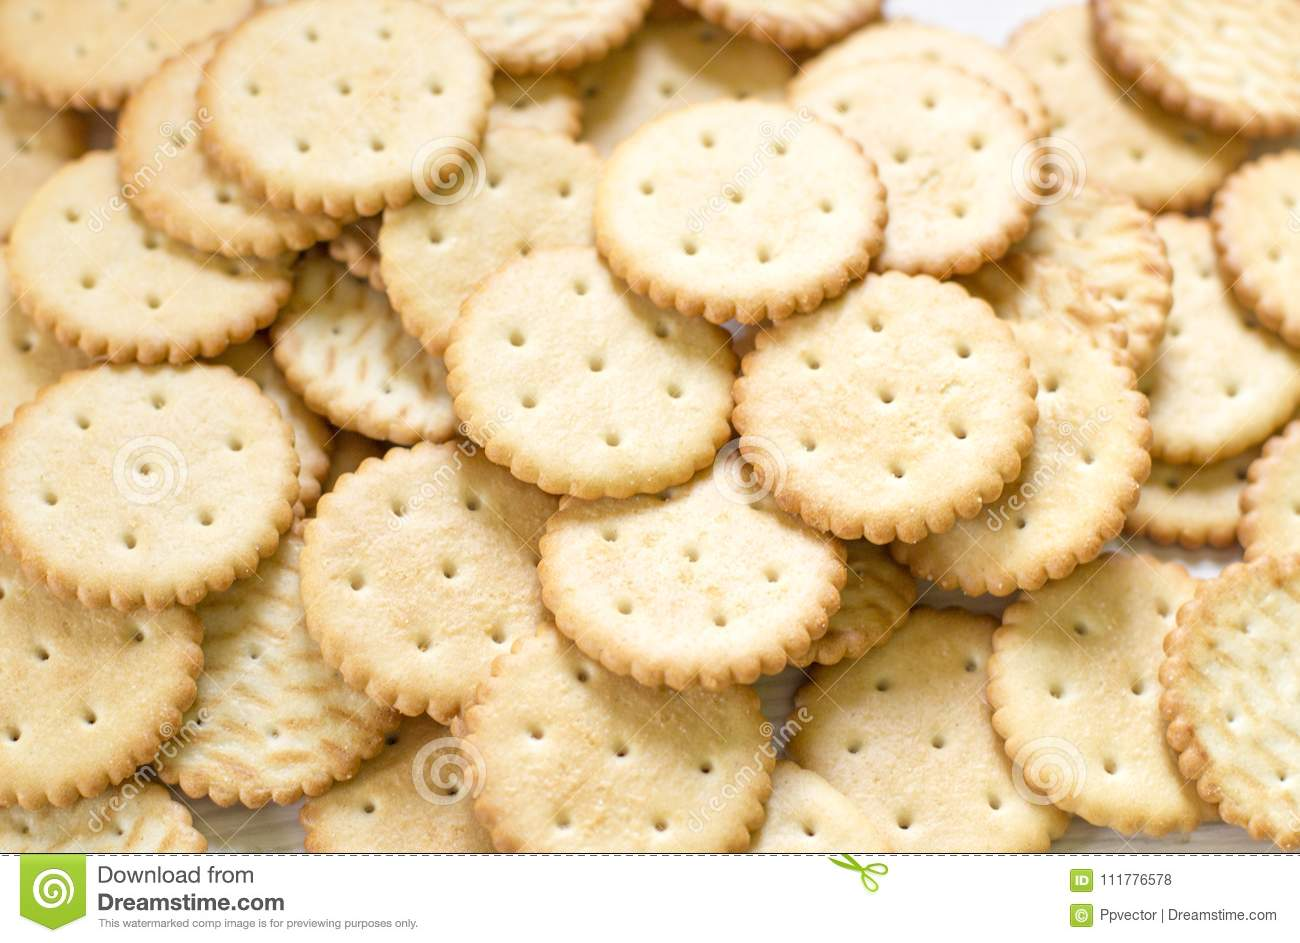 Cookie pattern. culinary background, fresh pastry